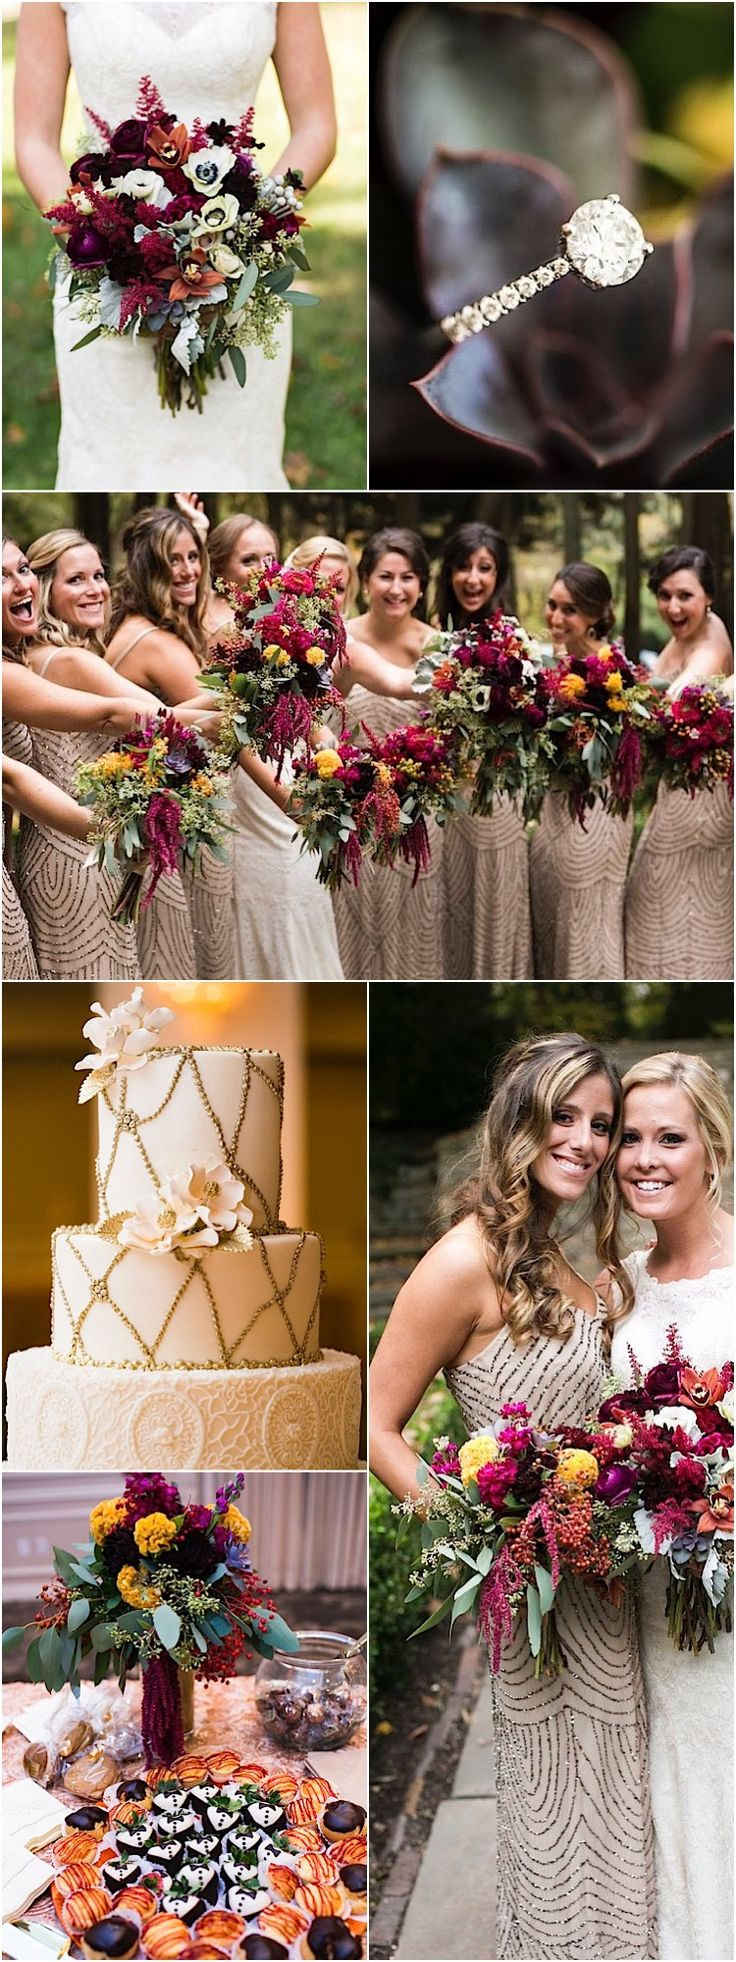 Gorgeous Fall wedding reception idea; photo: Carley K Photography